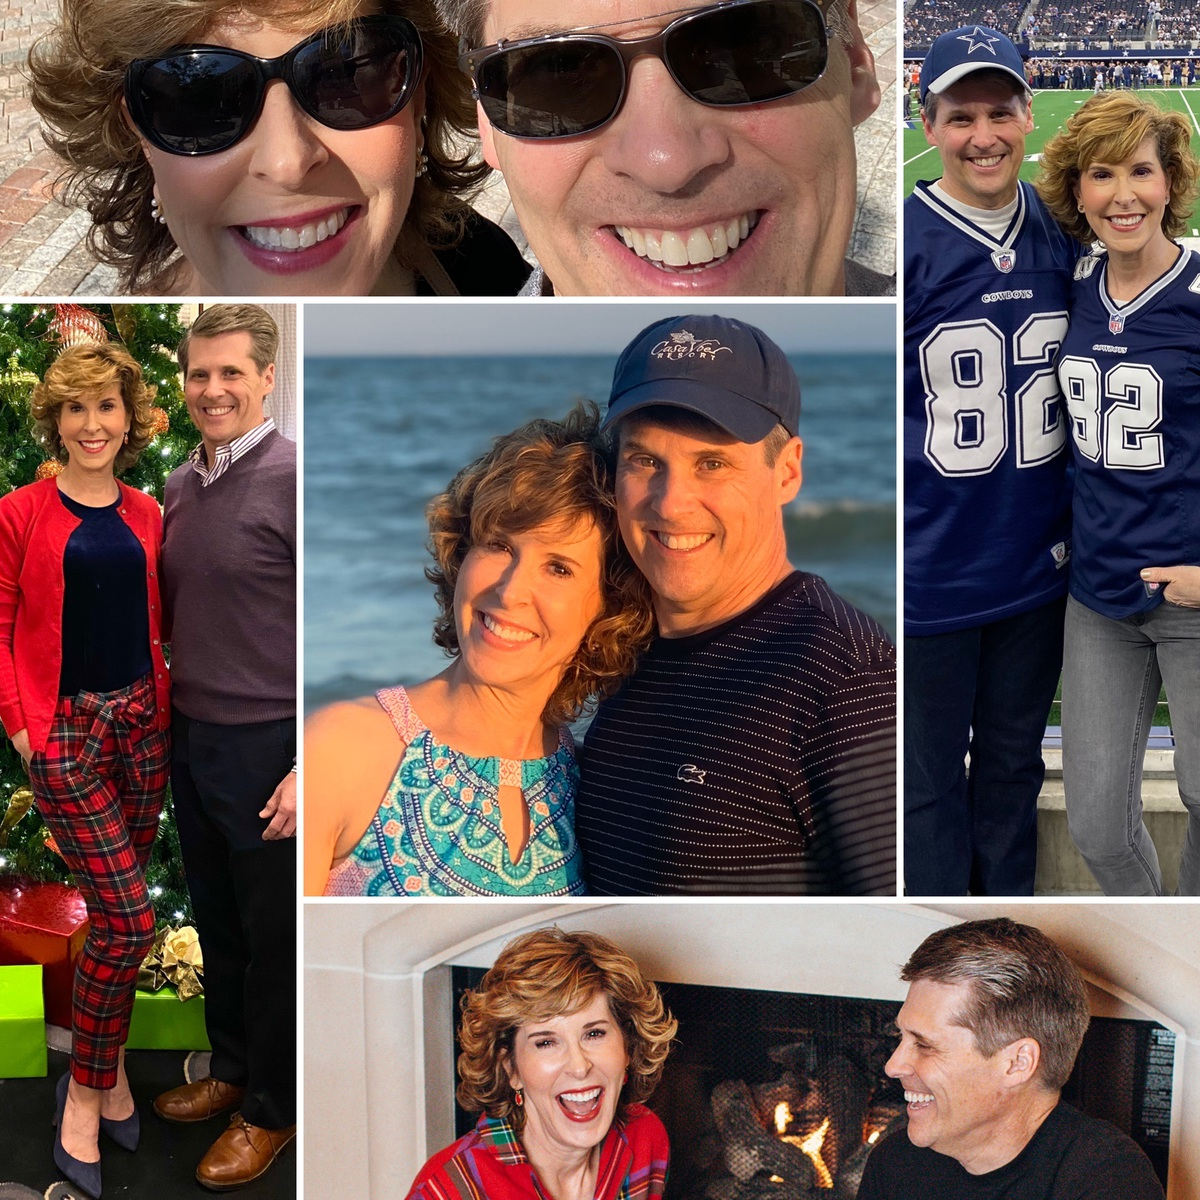 collage featuring photos of a married couple at various events